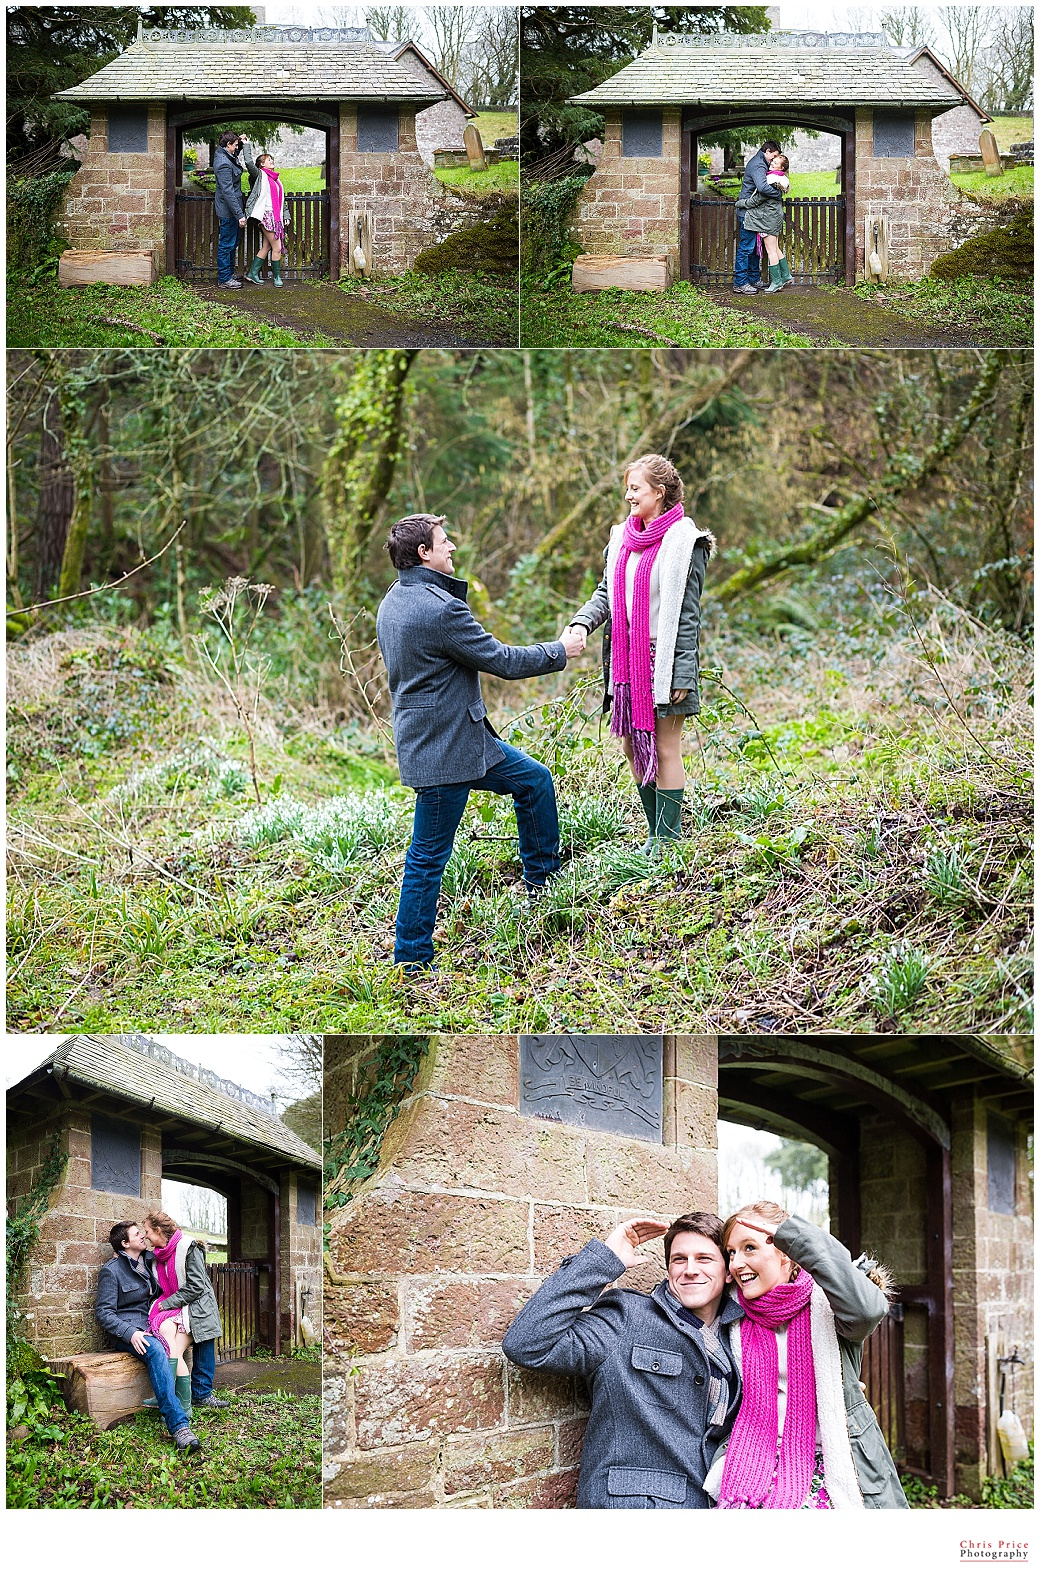 Chris Price Photography, Pre-Wed shoot Pembrokeshire, Engagement shoot Pembrokeshire, Wedding Photography West Wales